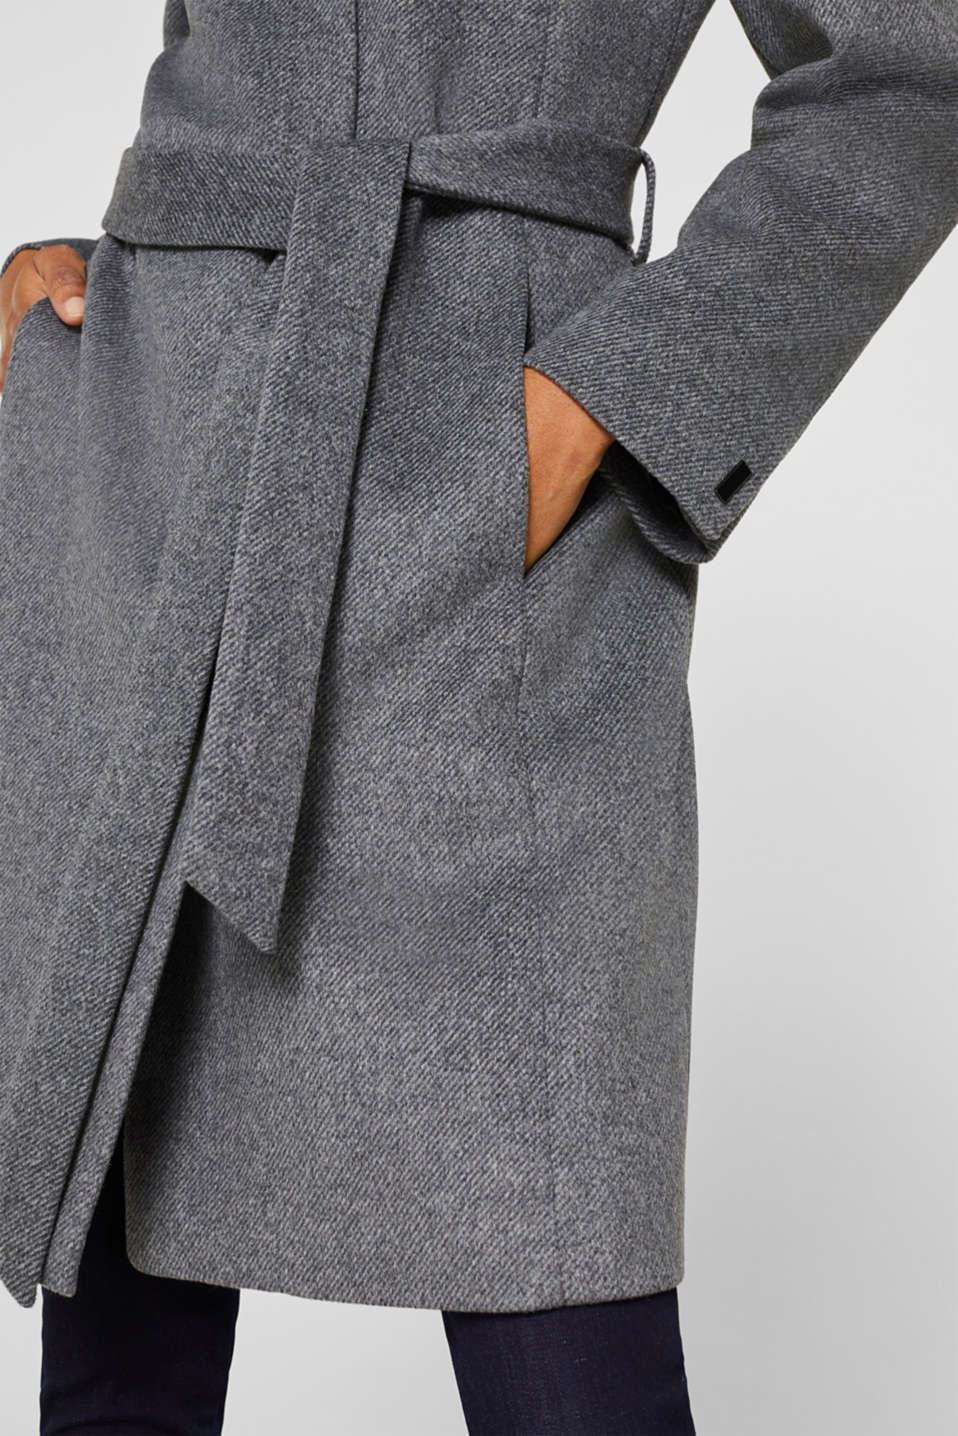 With wool: Coat with tie-around belt, GUNMETAL 5, detail image number 2